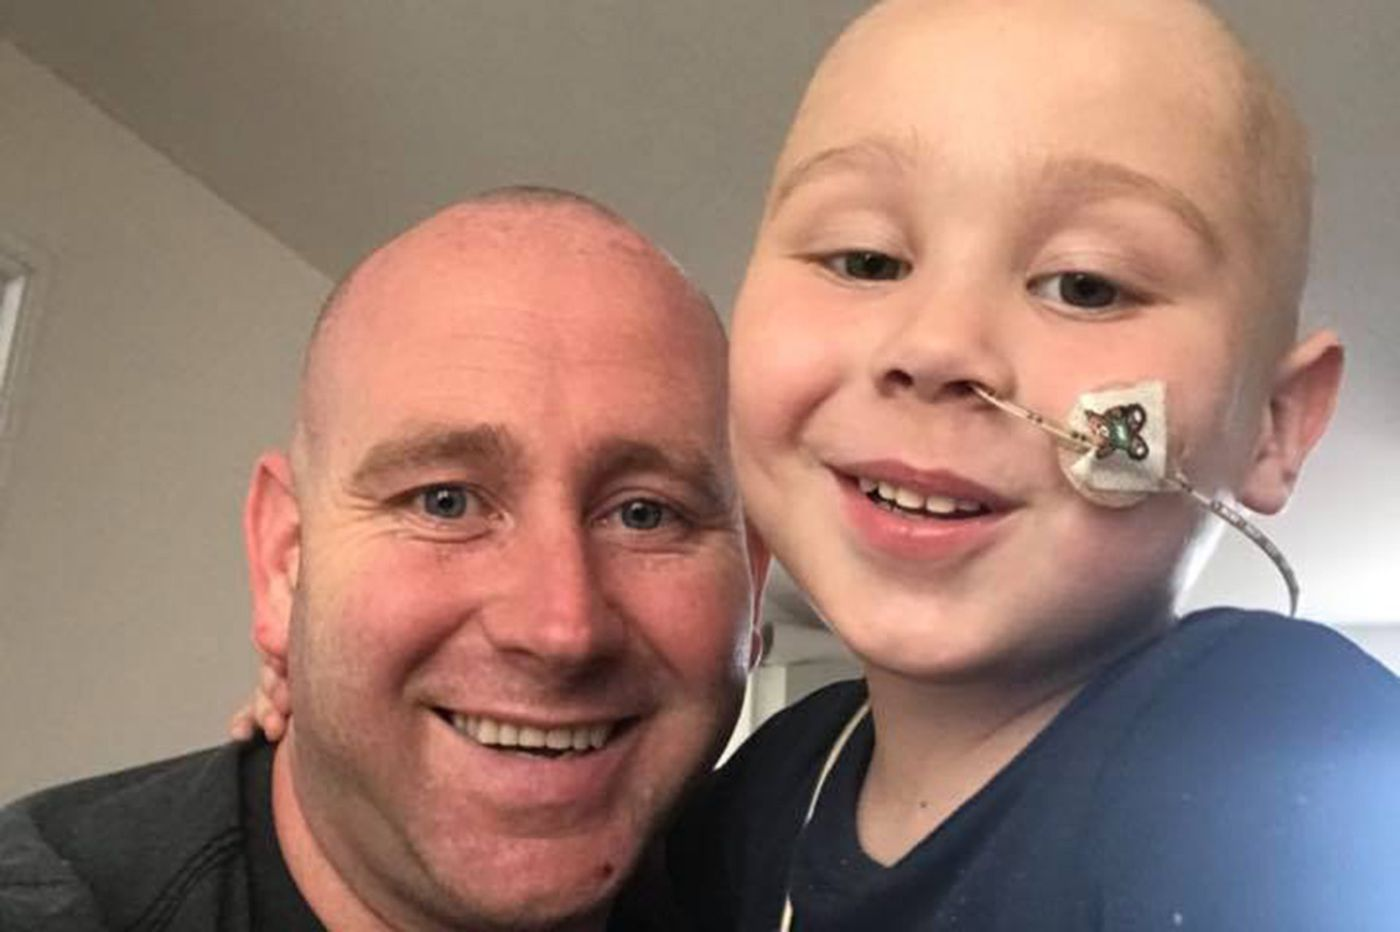 Over $800K raised to get British boy cancer treatment at CHOP: 'This is our only hope'